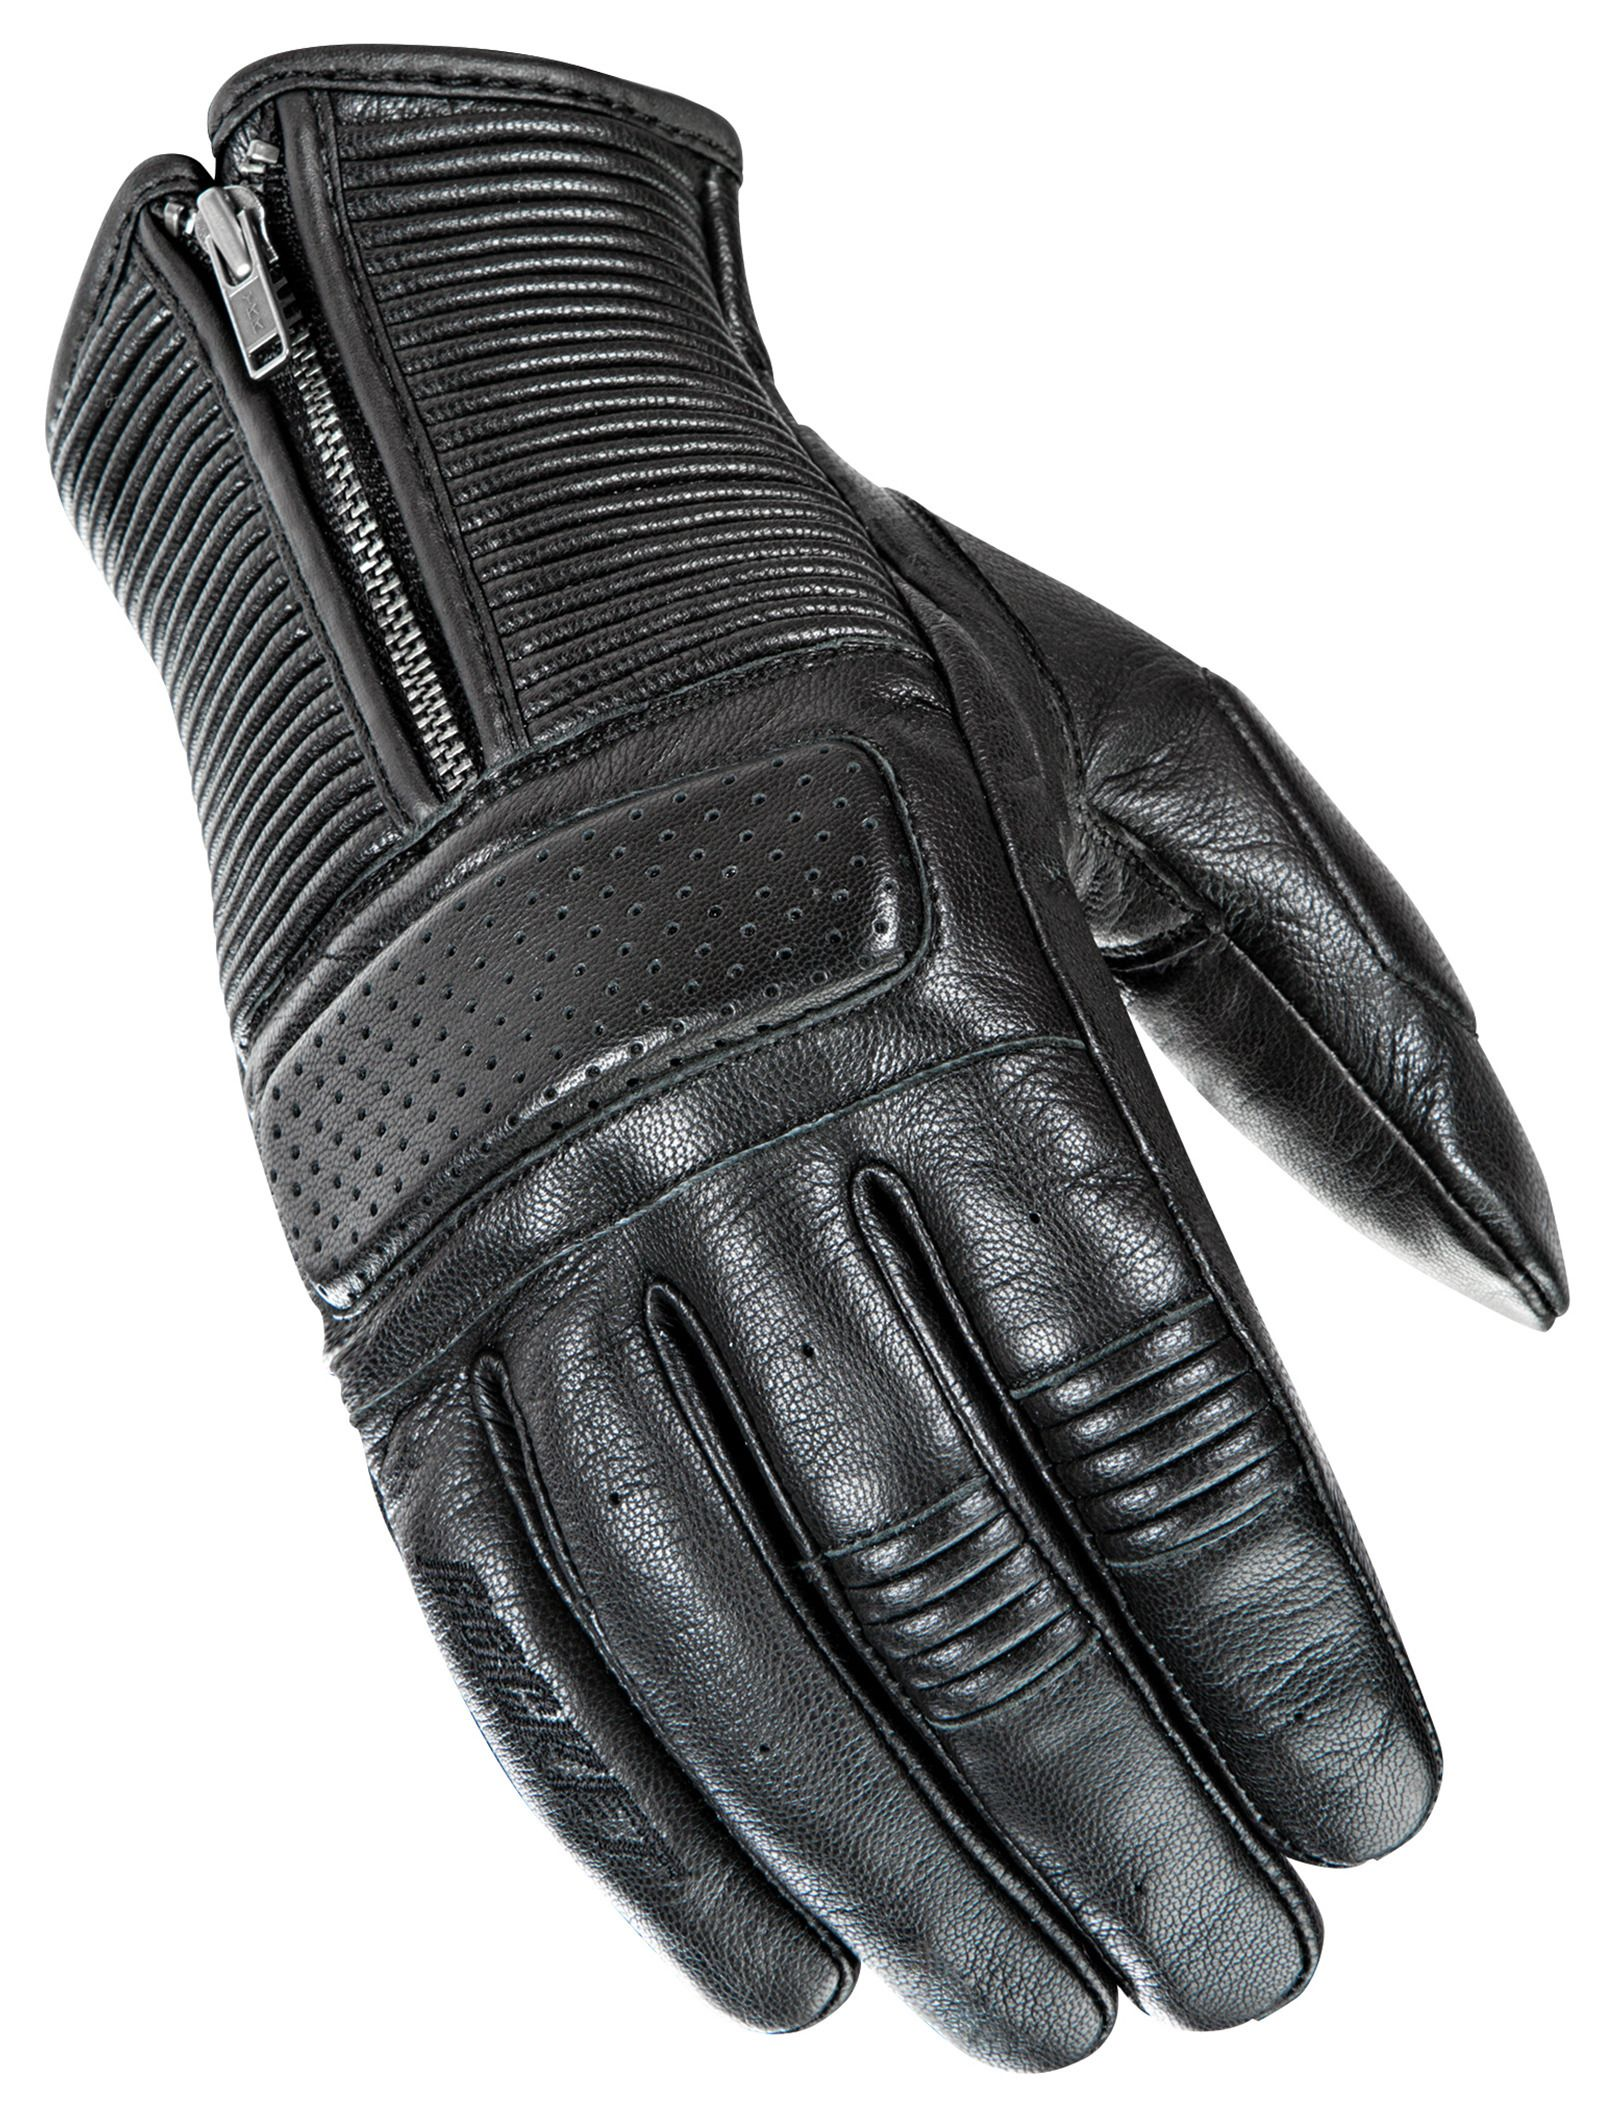 Motorcycle gloves tight or loose - Motorcycle Gloves Tight Or Loose 4